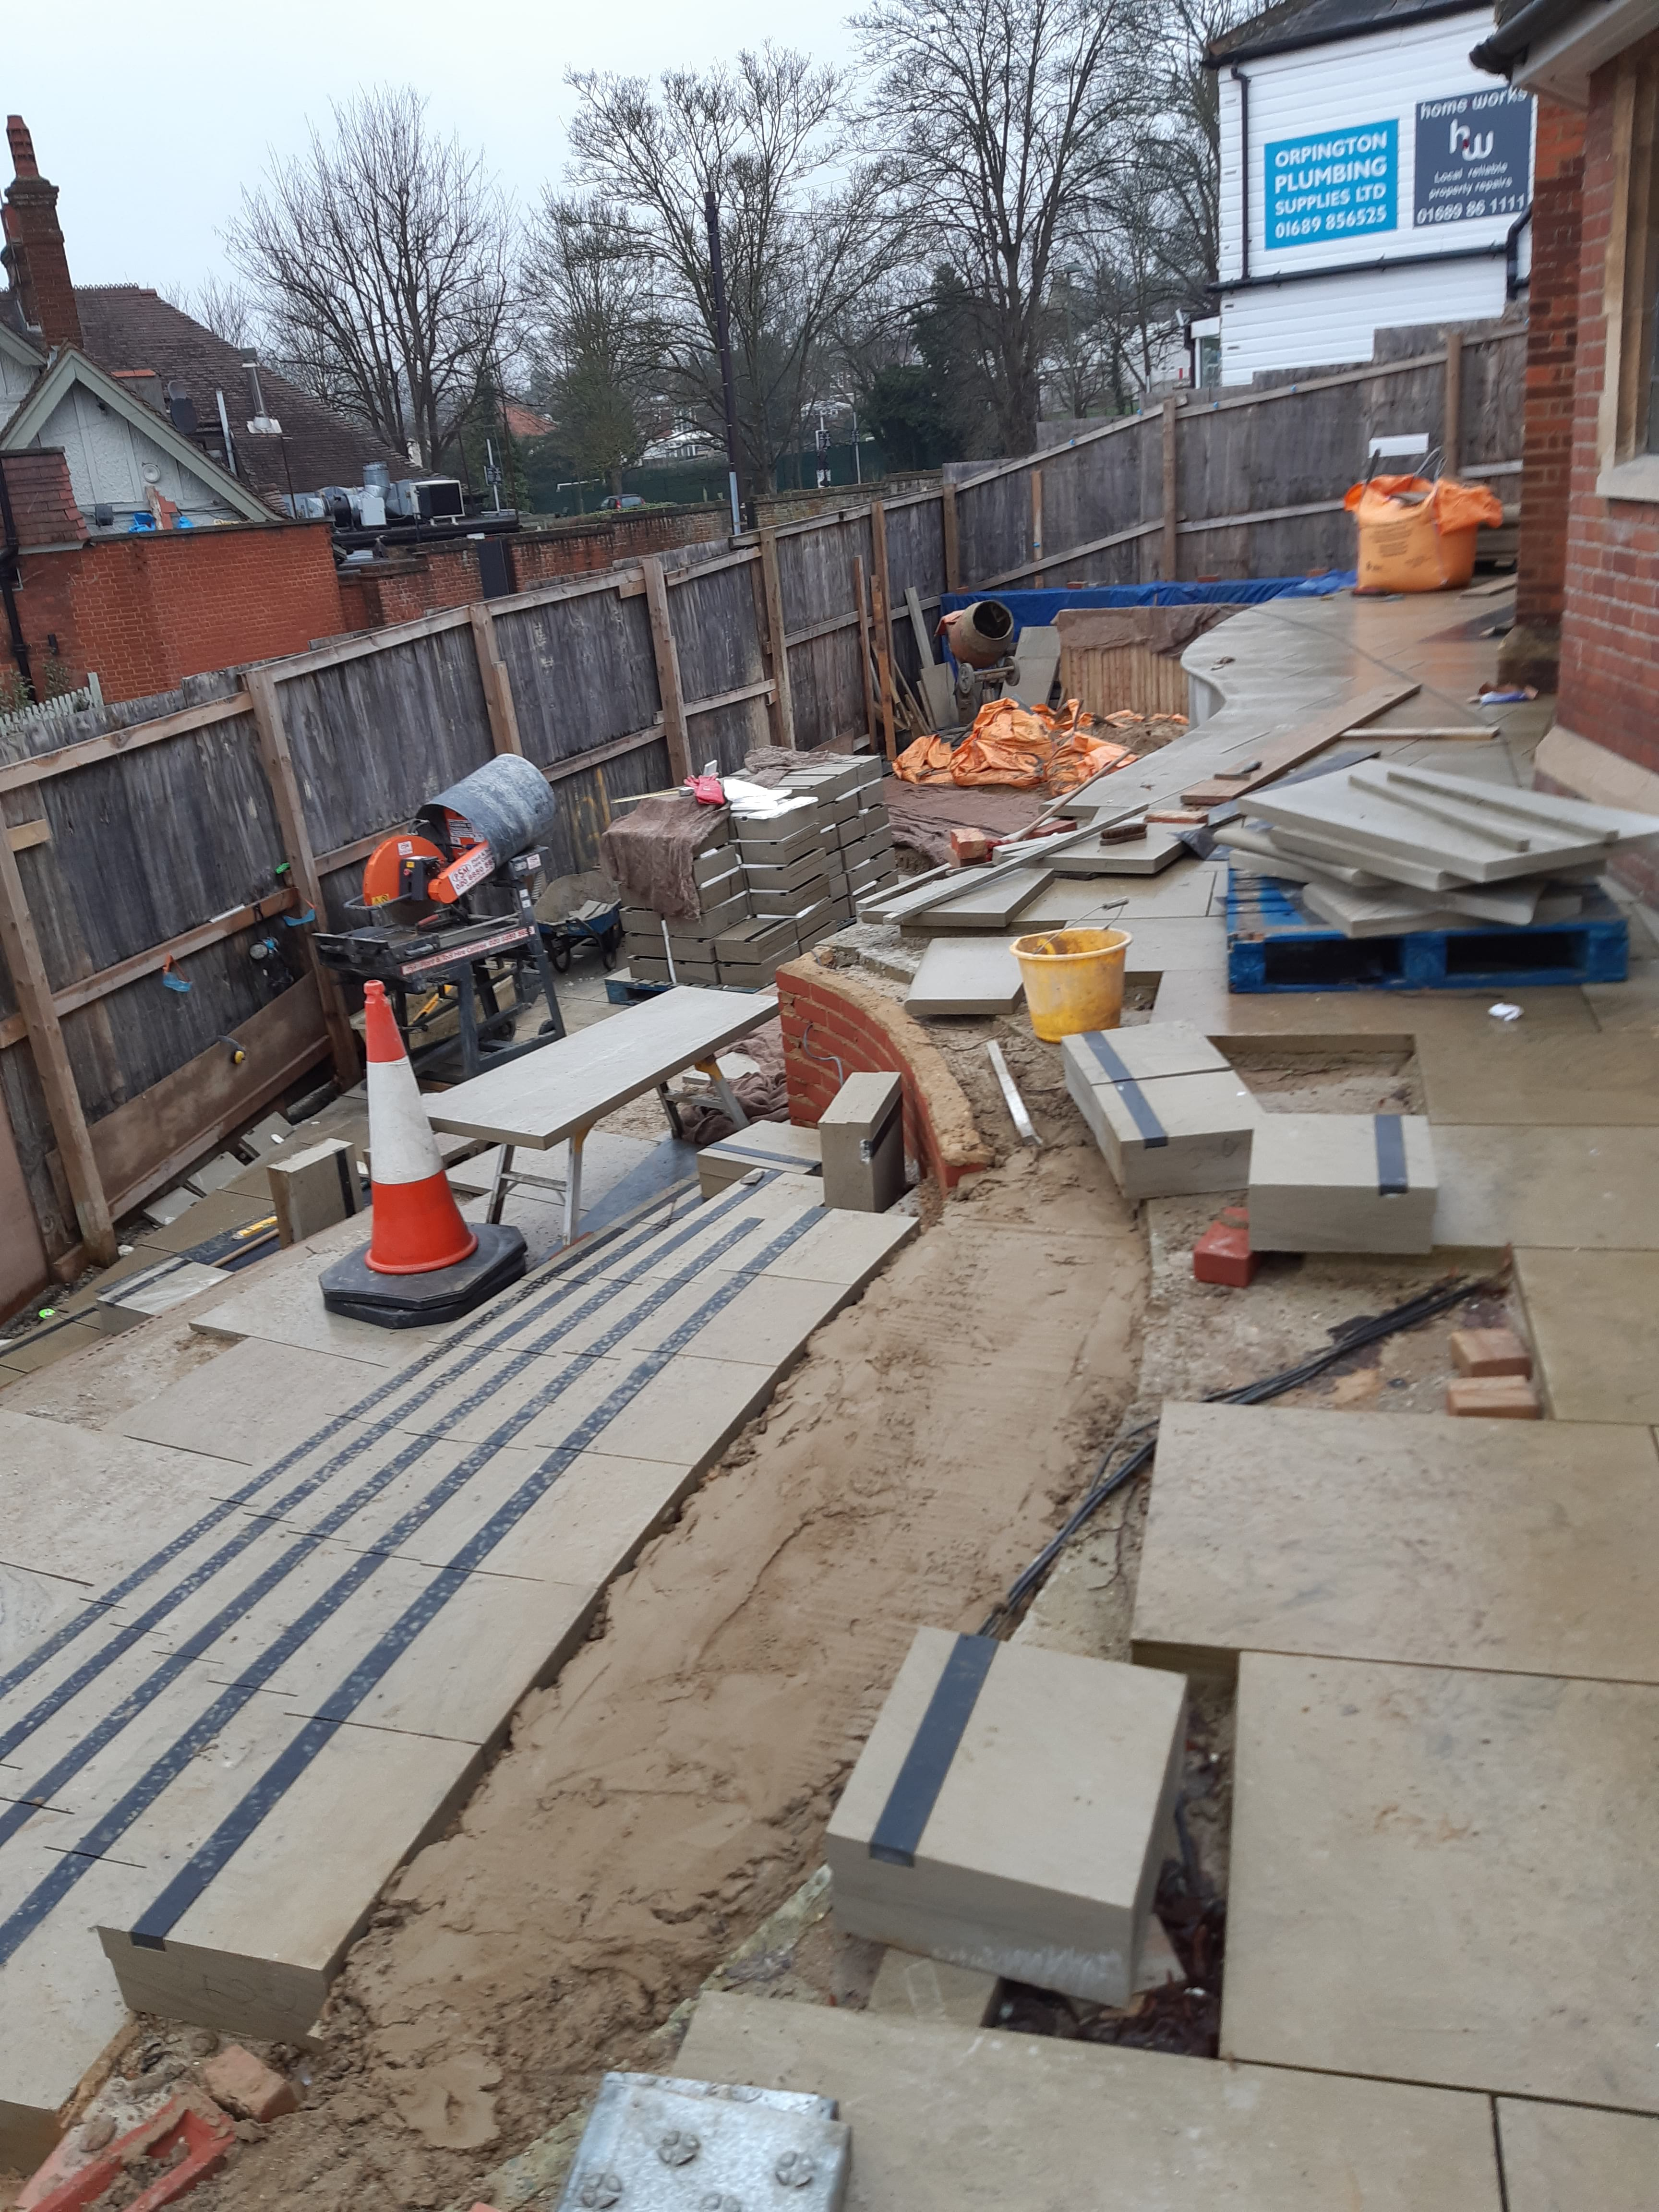 26.01.20. The works at the front of the church. Here are the steps taking shape with their complex curves